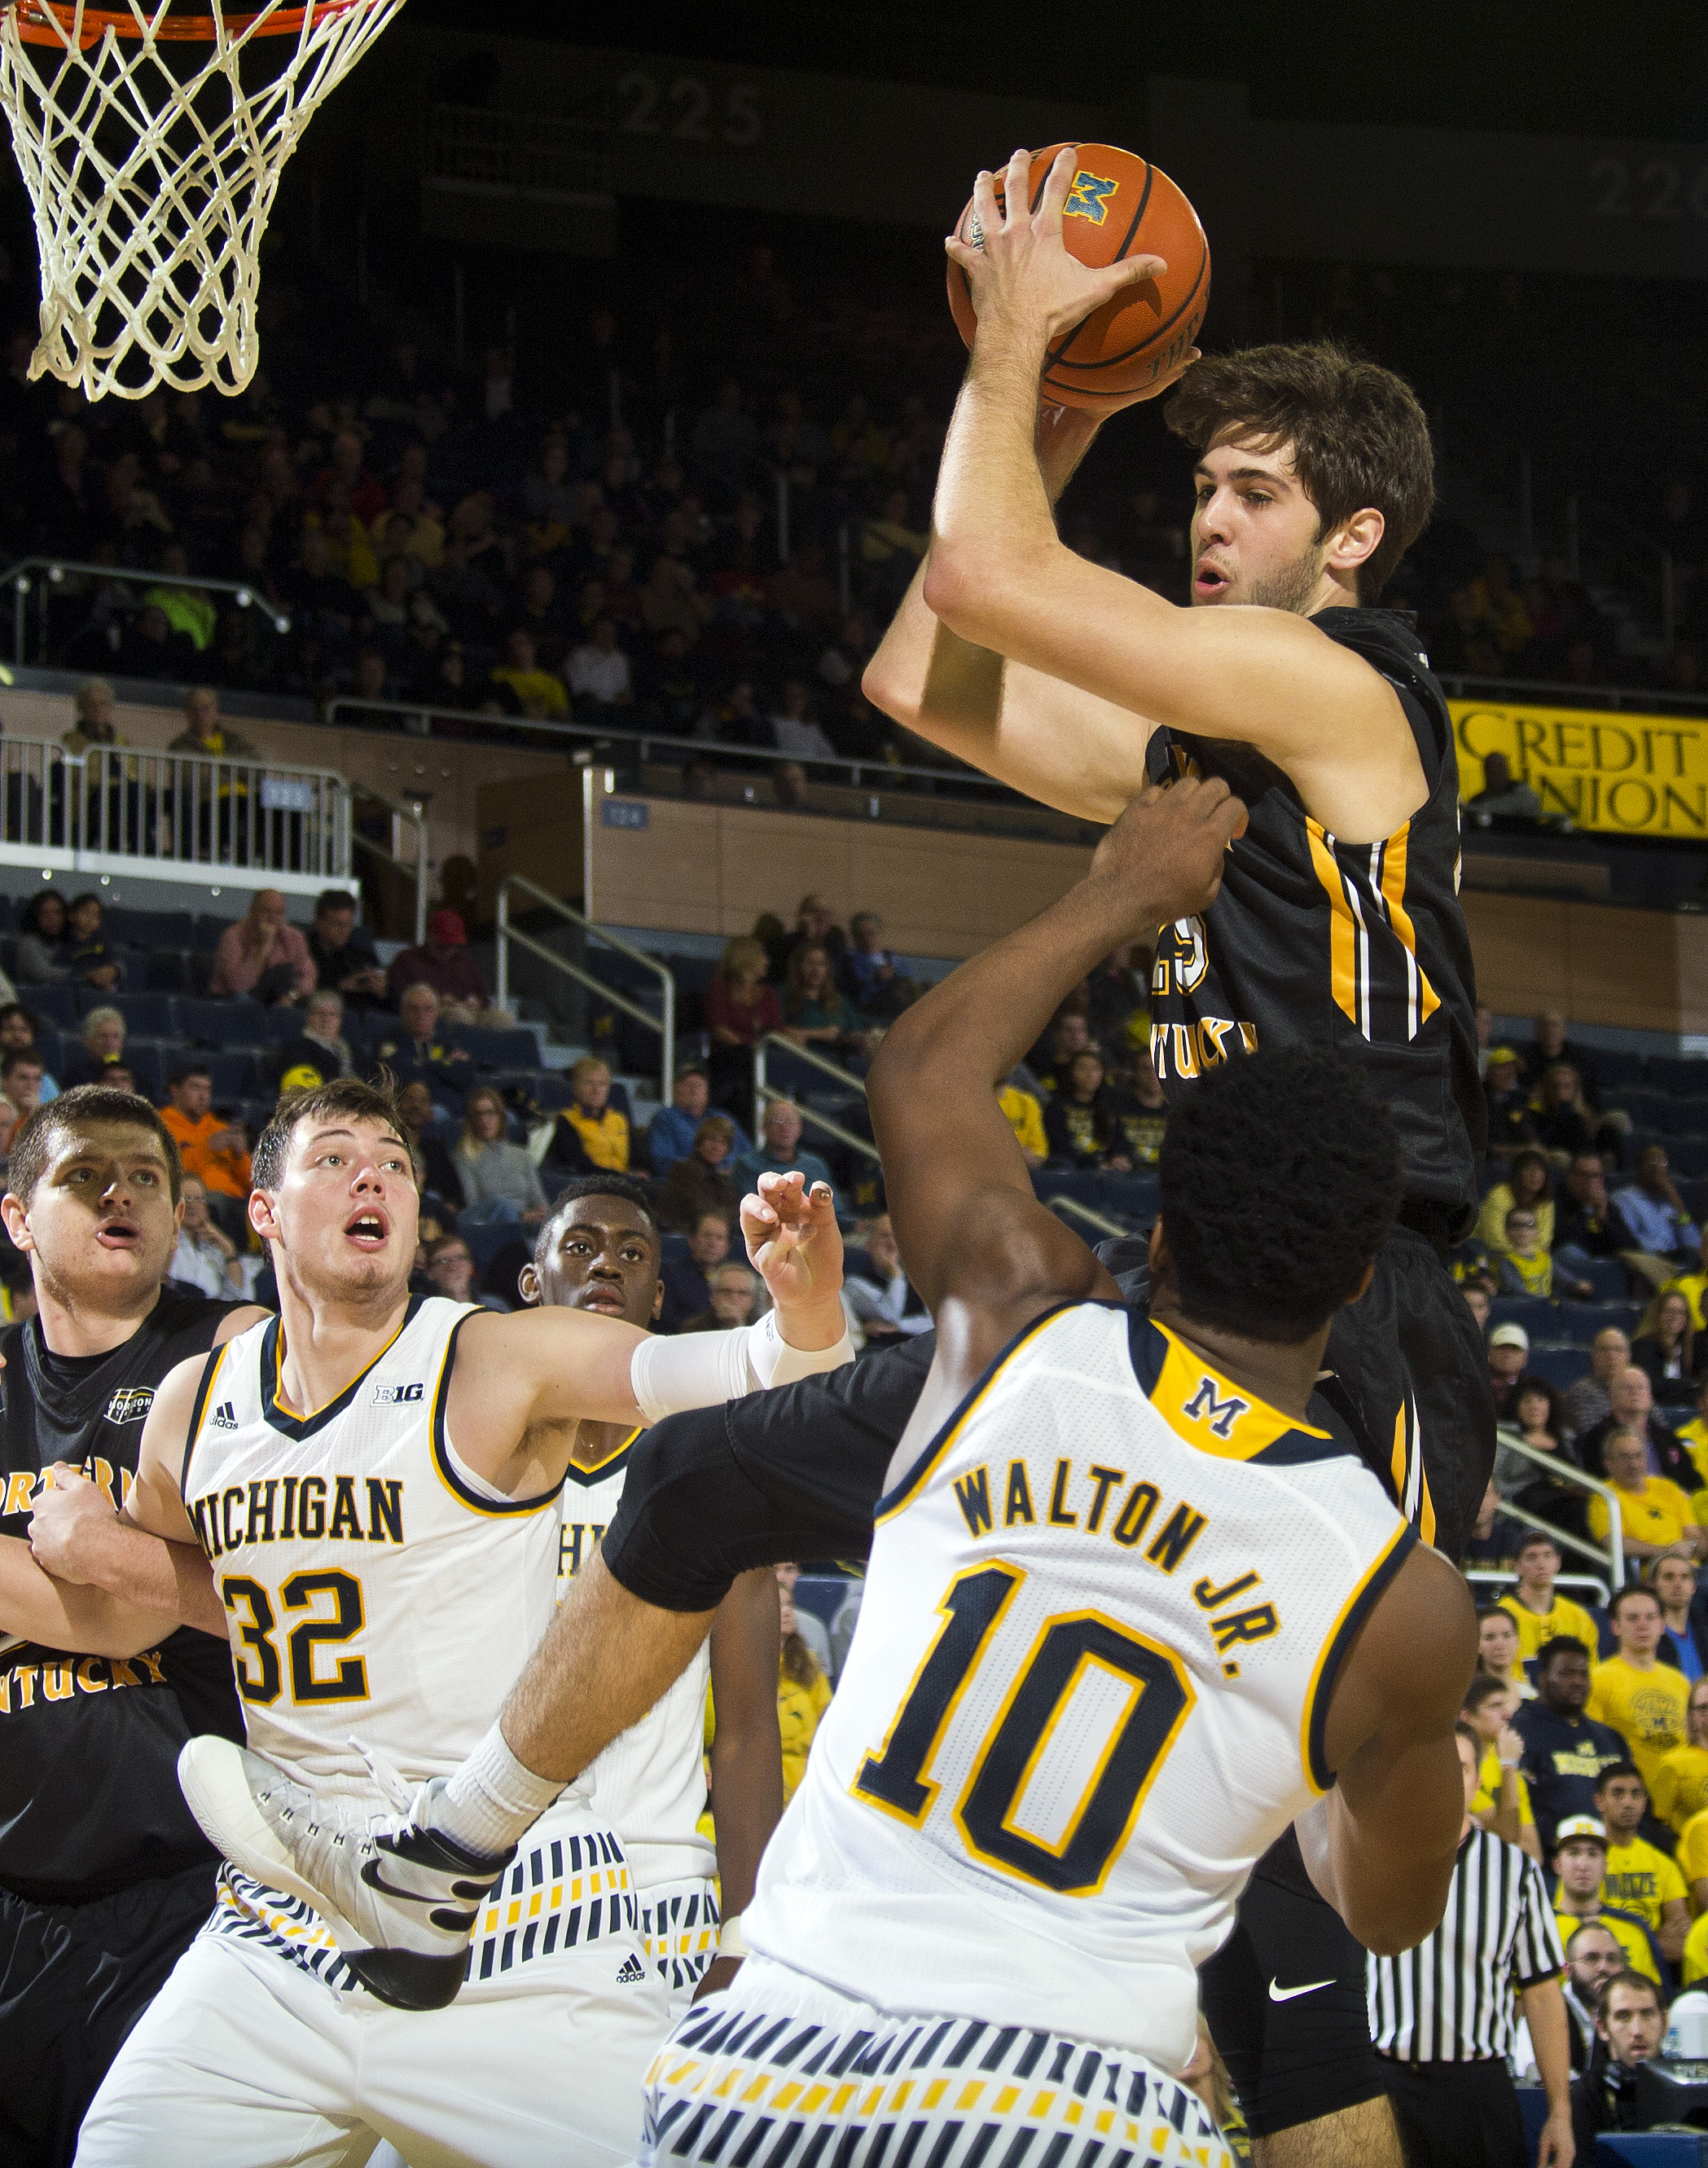 Northern Kentucky guard Cole Murray, top, grabs a rebound above Michigan forward Ricky Doyle (32) and guard Derrick Walton Jr. (10) during the first half of an NCAA college basketball game at Crisler Center in Ann Arbor, Mich., Tuesday, Dec. 15, 2015. (AP